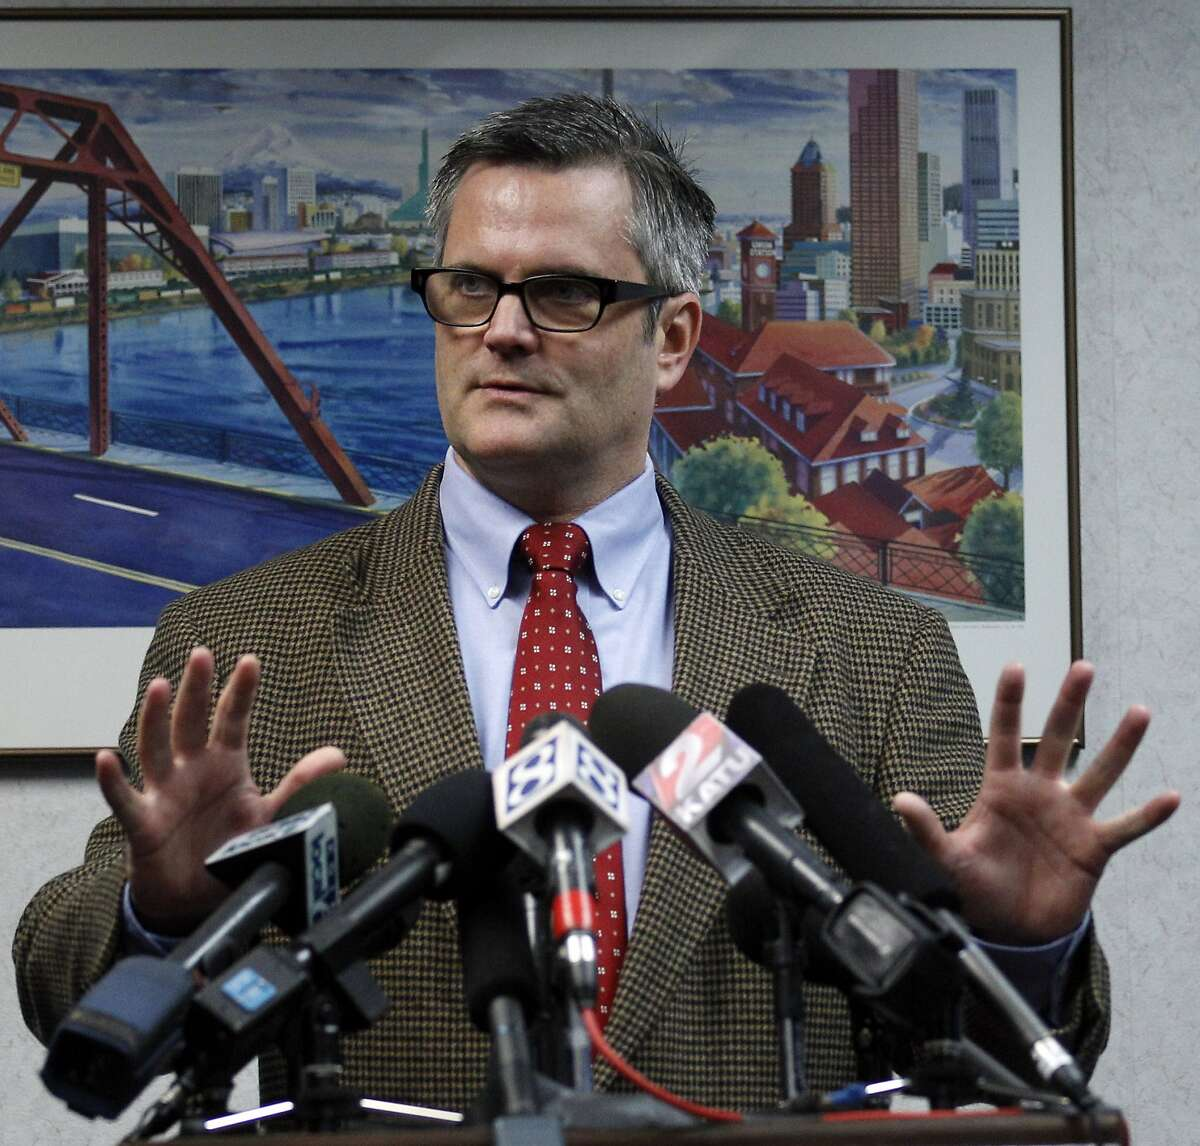 In this photo taken Nov. 14, 2011, Portland Mayor Sam Adams discuss Sunday's police raid on the Occupy Portland encampment in two downtown parks during a news conference, in Portland, Ore. As concerns over safety and sanitation grew at the encampments over the last month, officials from nearly 40 cities turned to each other on conference calls, sharing what worked and what hasn't as they grappled with the leaderless movement. (AP Photo/Rick Bowmer)